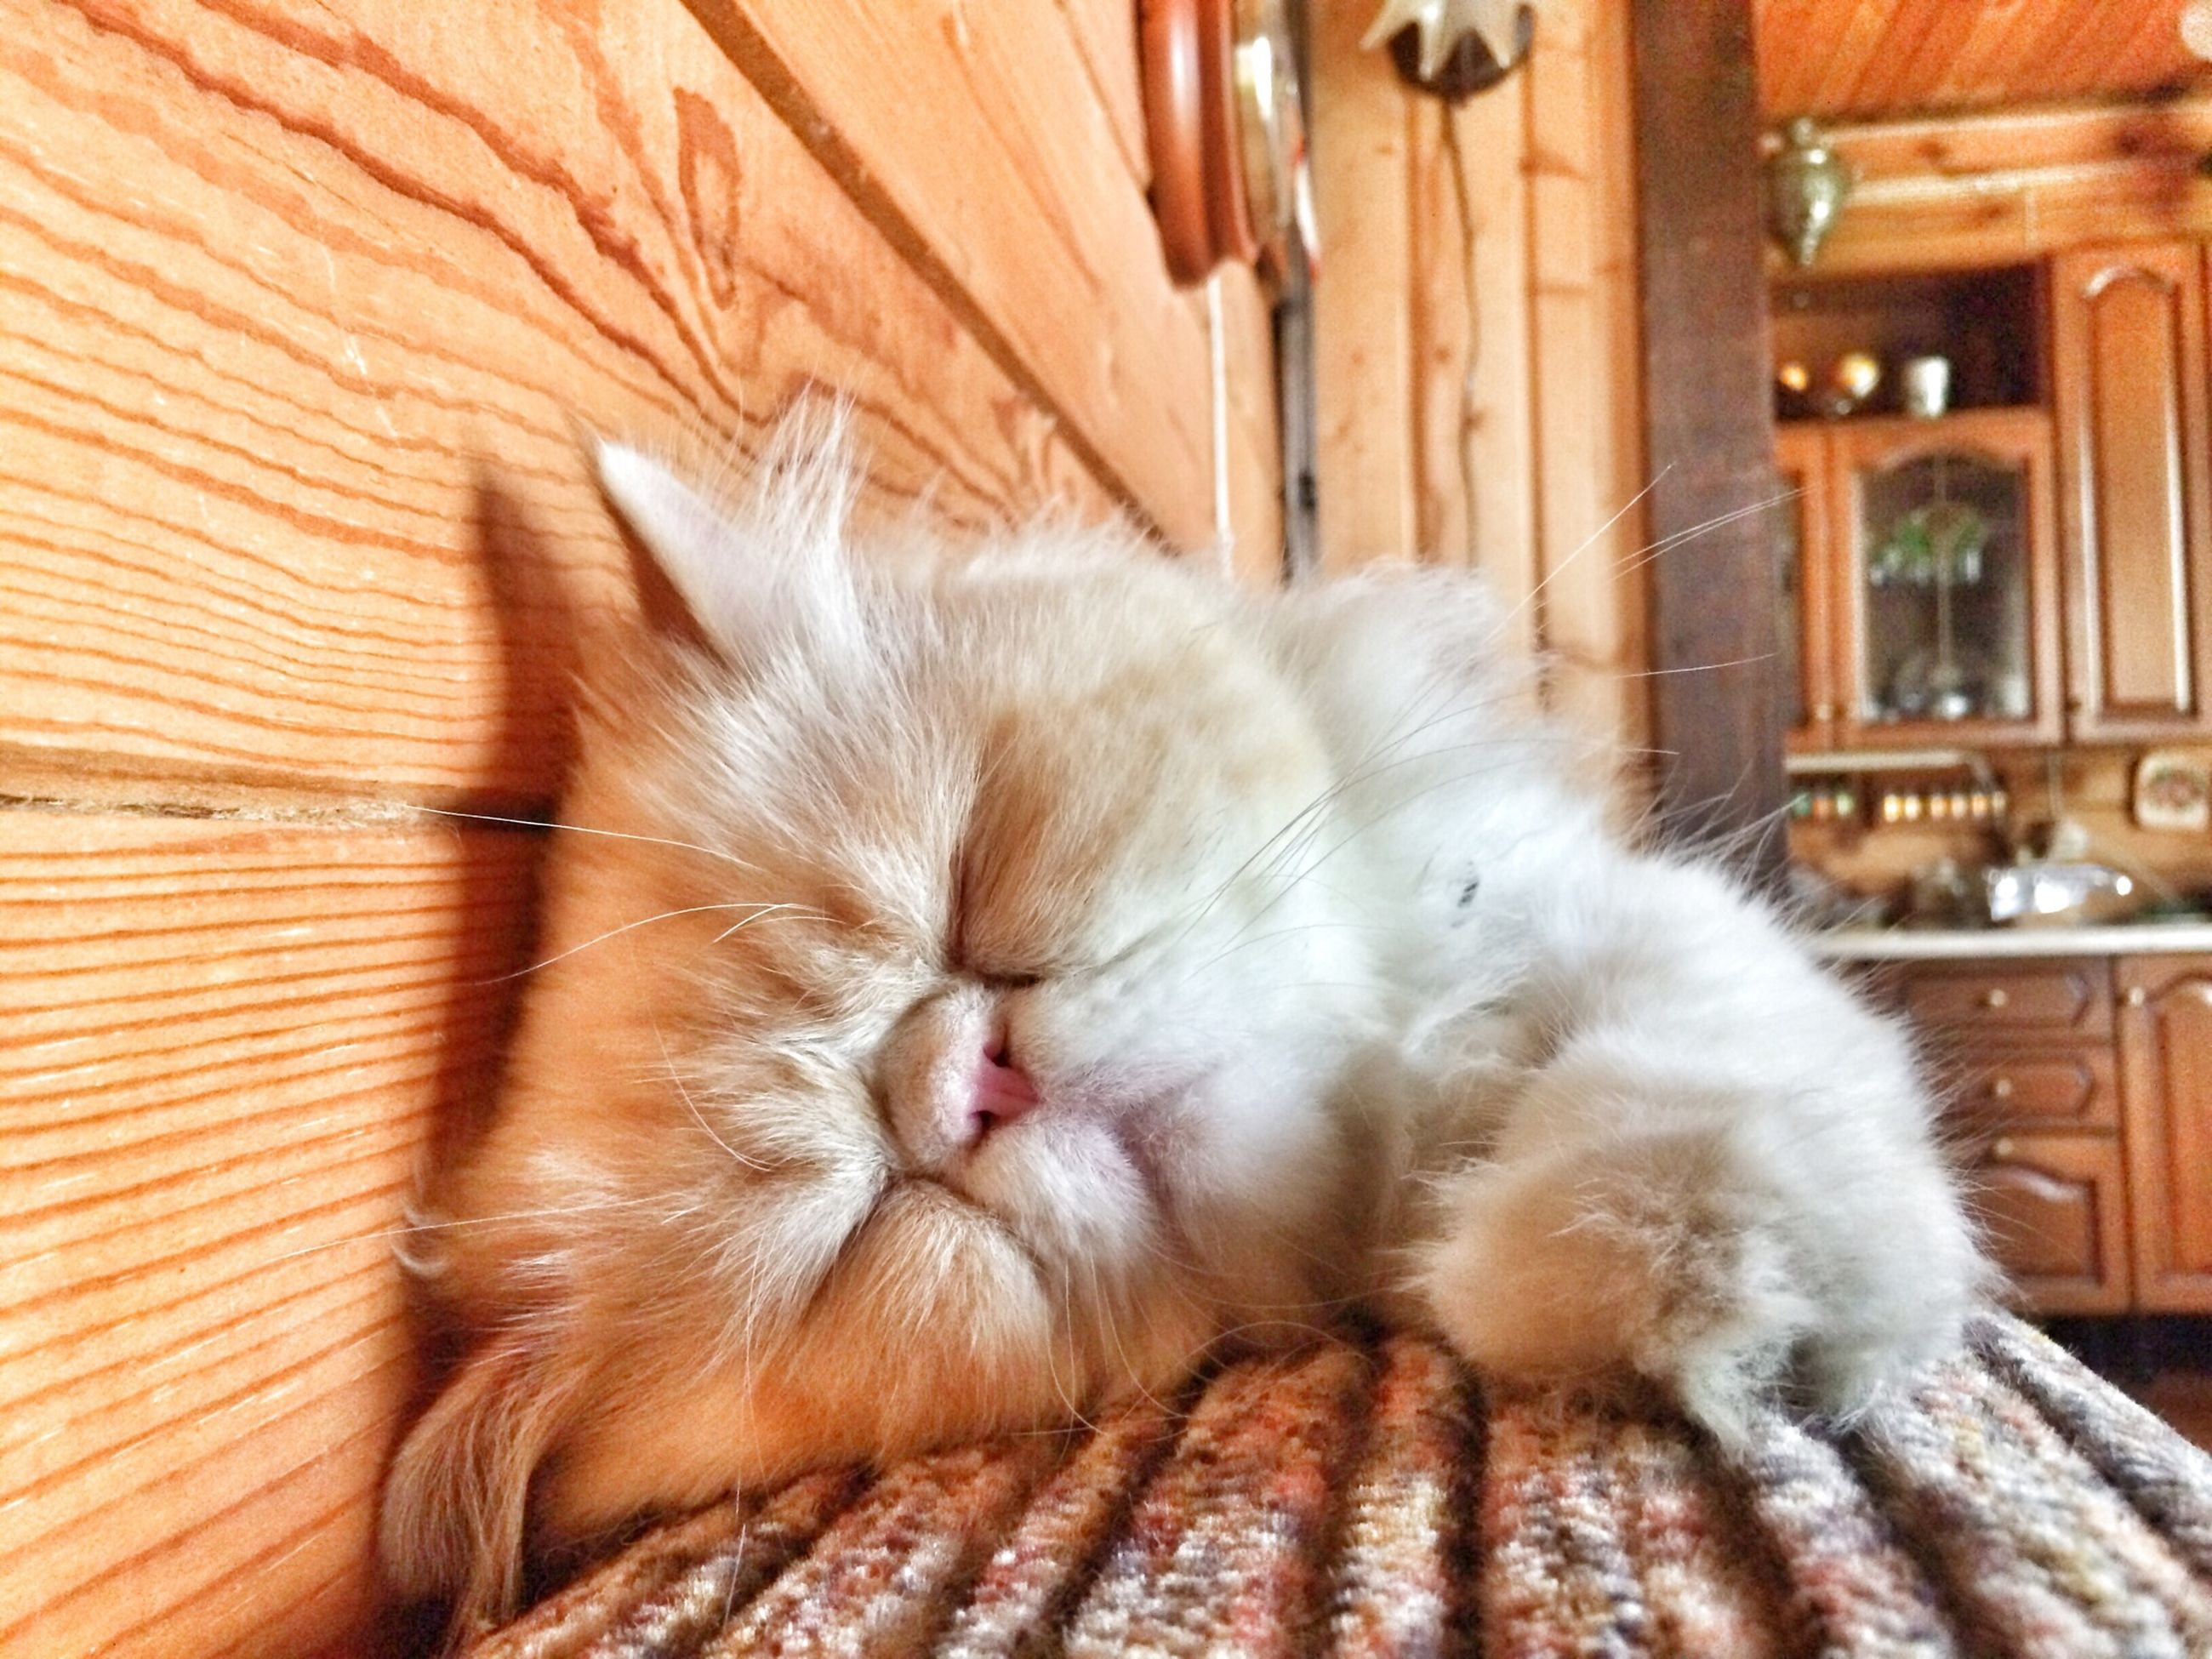 animal themes, domestic cat, domestic animals, mammal, pets, cat, one animal, feline, indoors, sleeping, relaxation, whisker, resting, eyes closed, lying down, home interior, close-up, no people, zoology, animal head